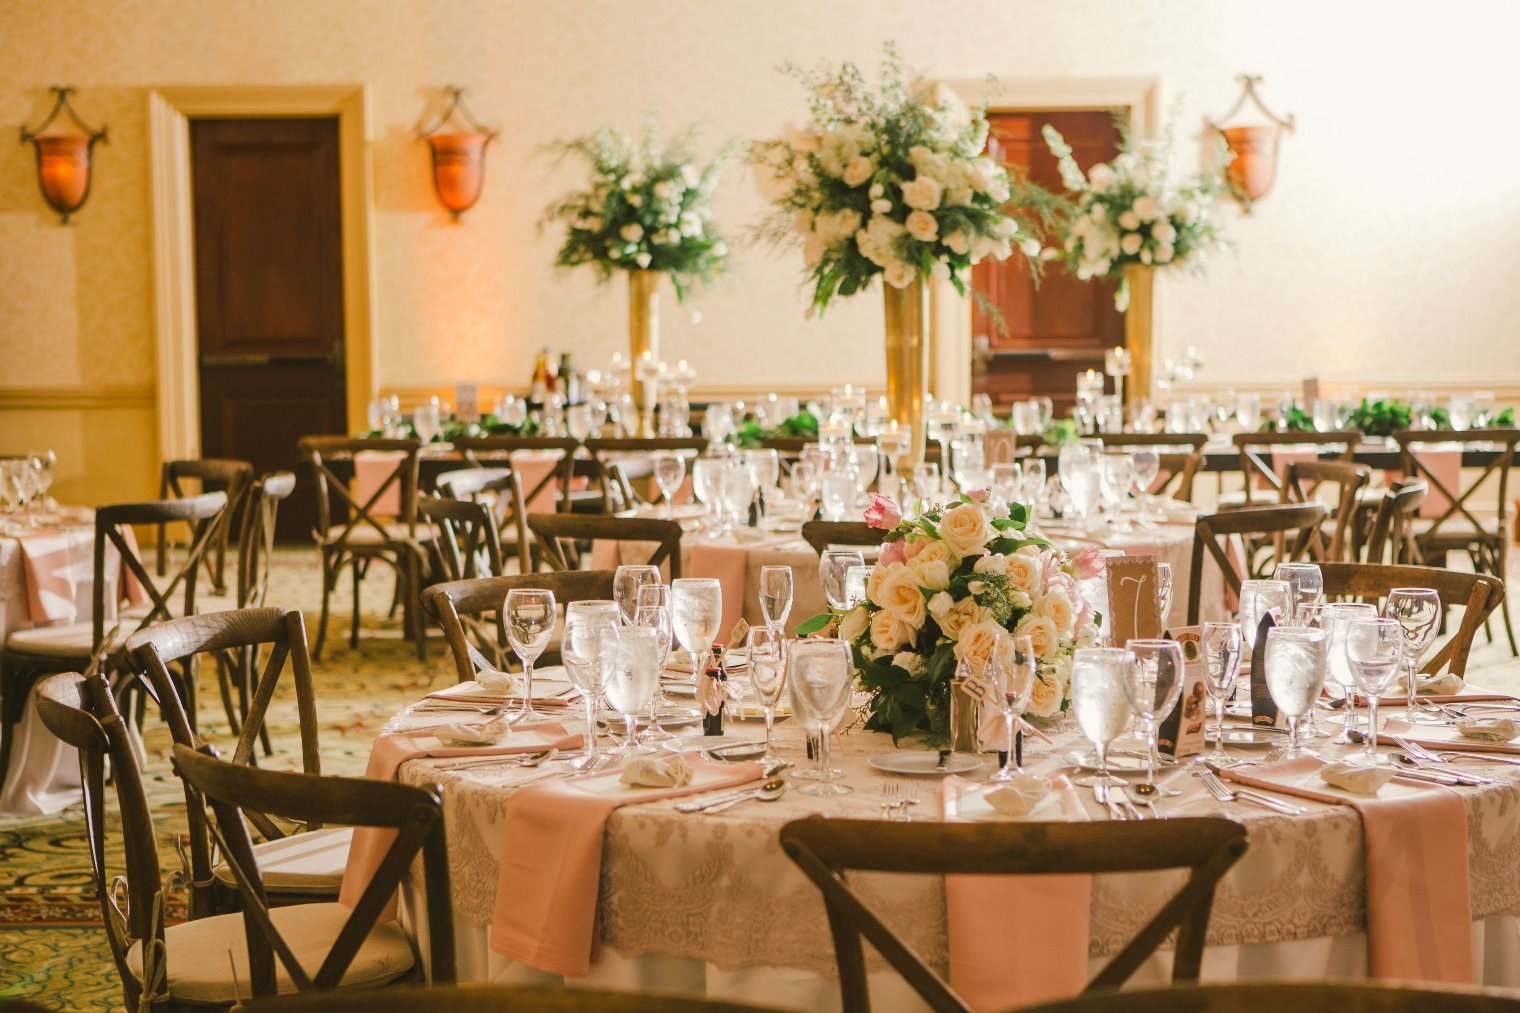 Ivory and Pink Wedding Reception - Elizabeth Anne Designs: The ...